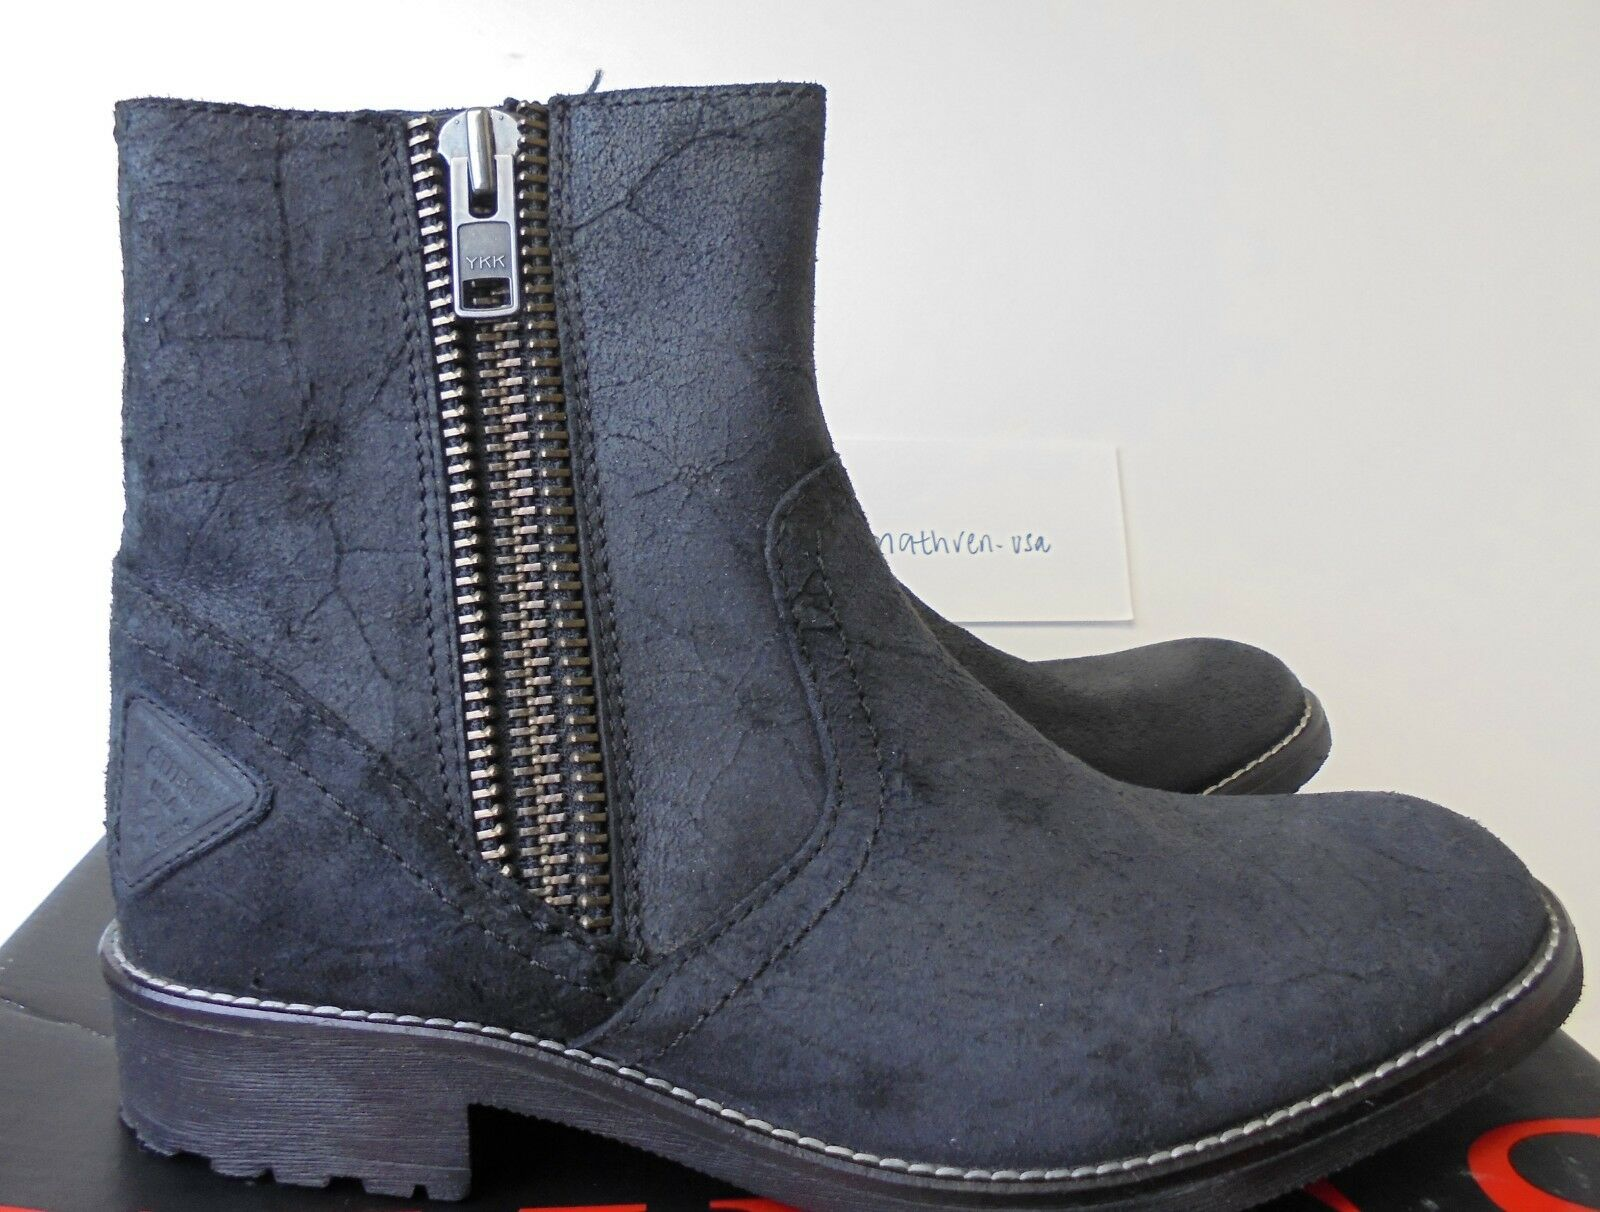 Guess herren side zip ankle leather Stiefel sz 9 style style style GMCAYDEN NEW 848830